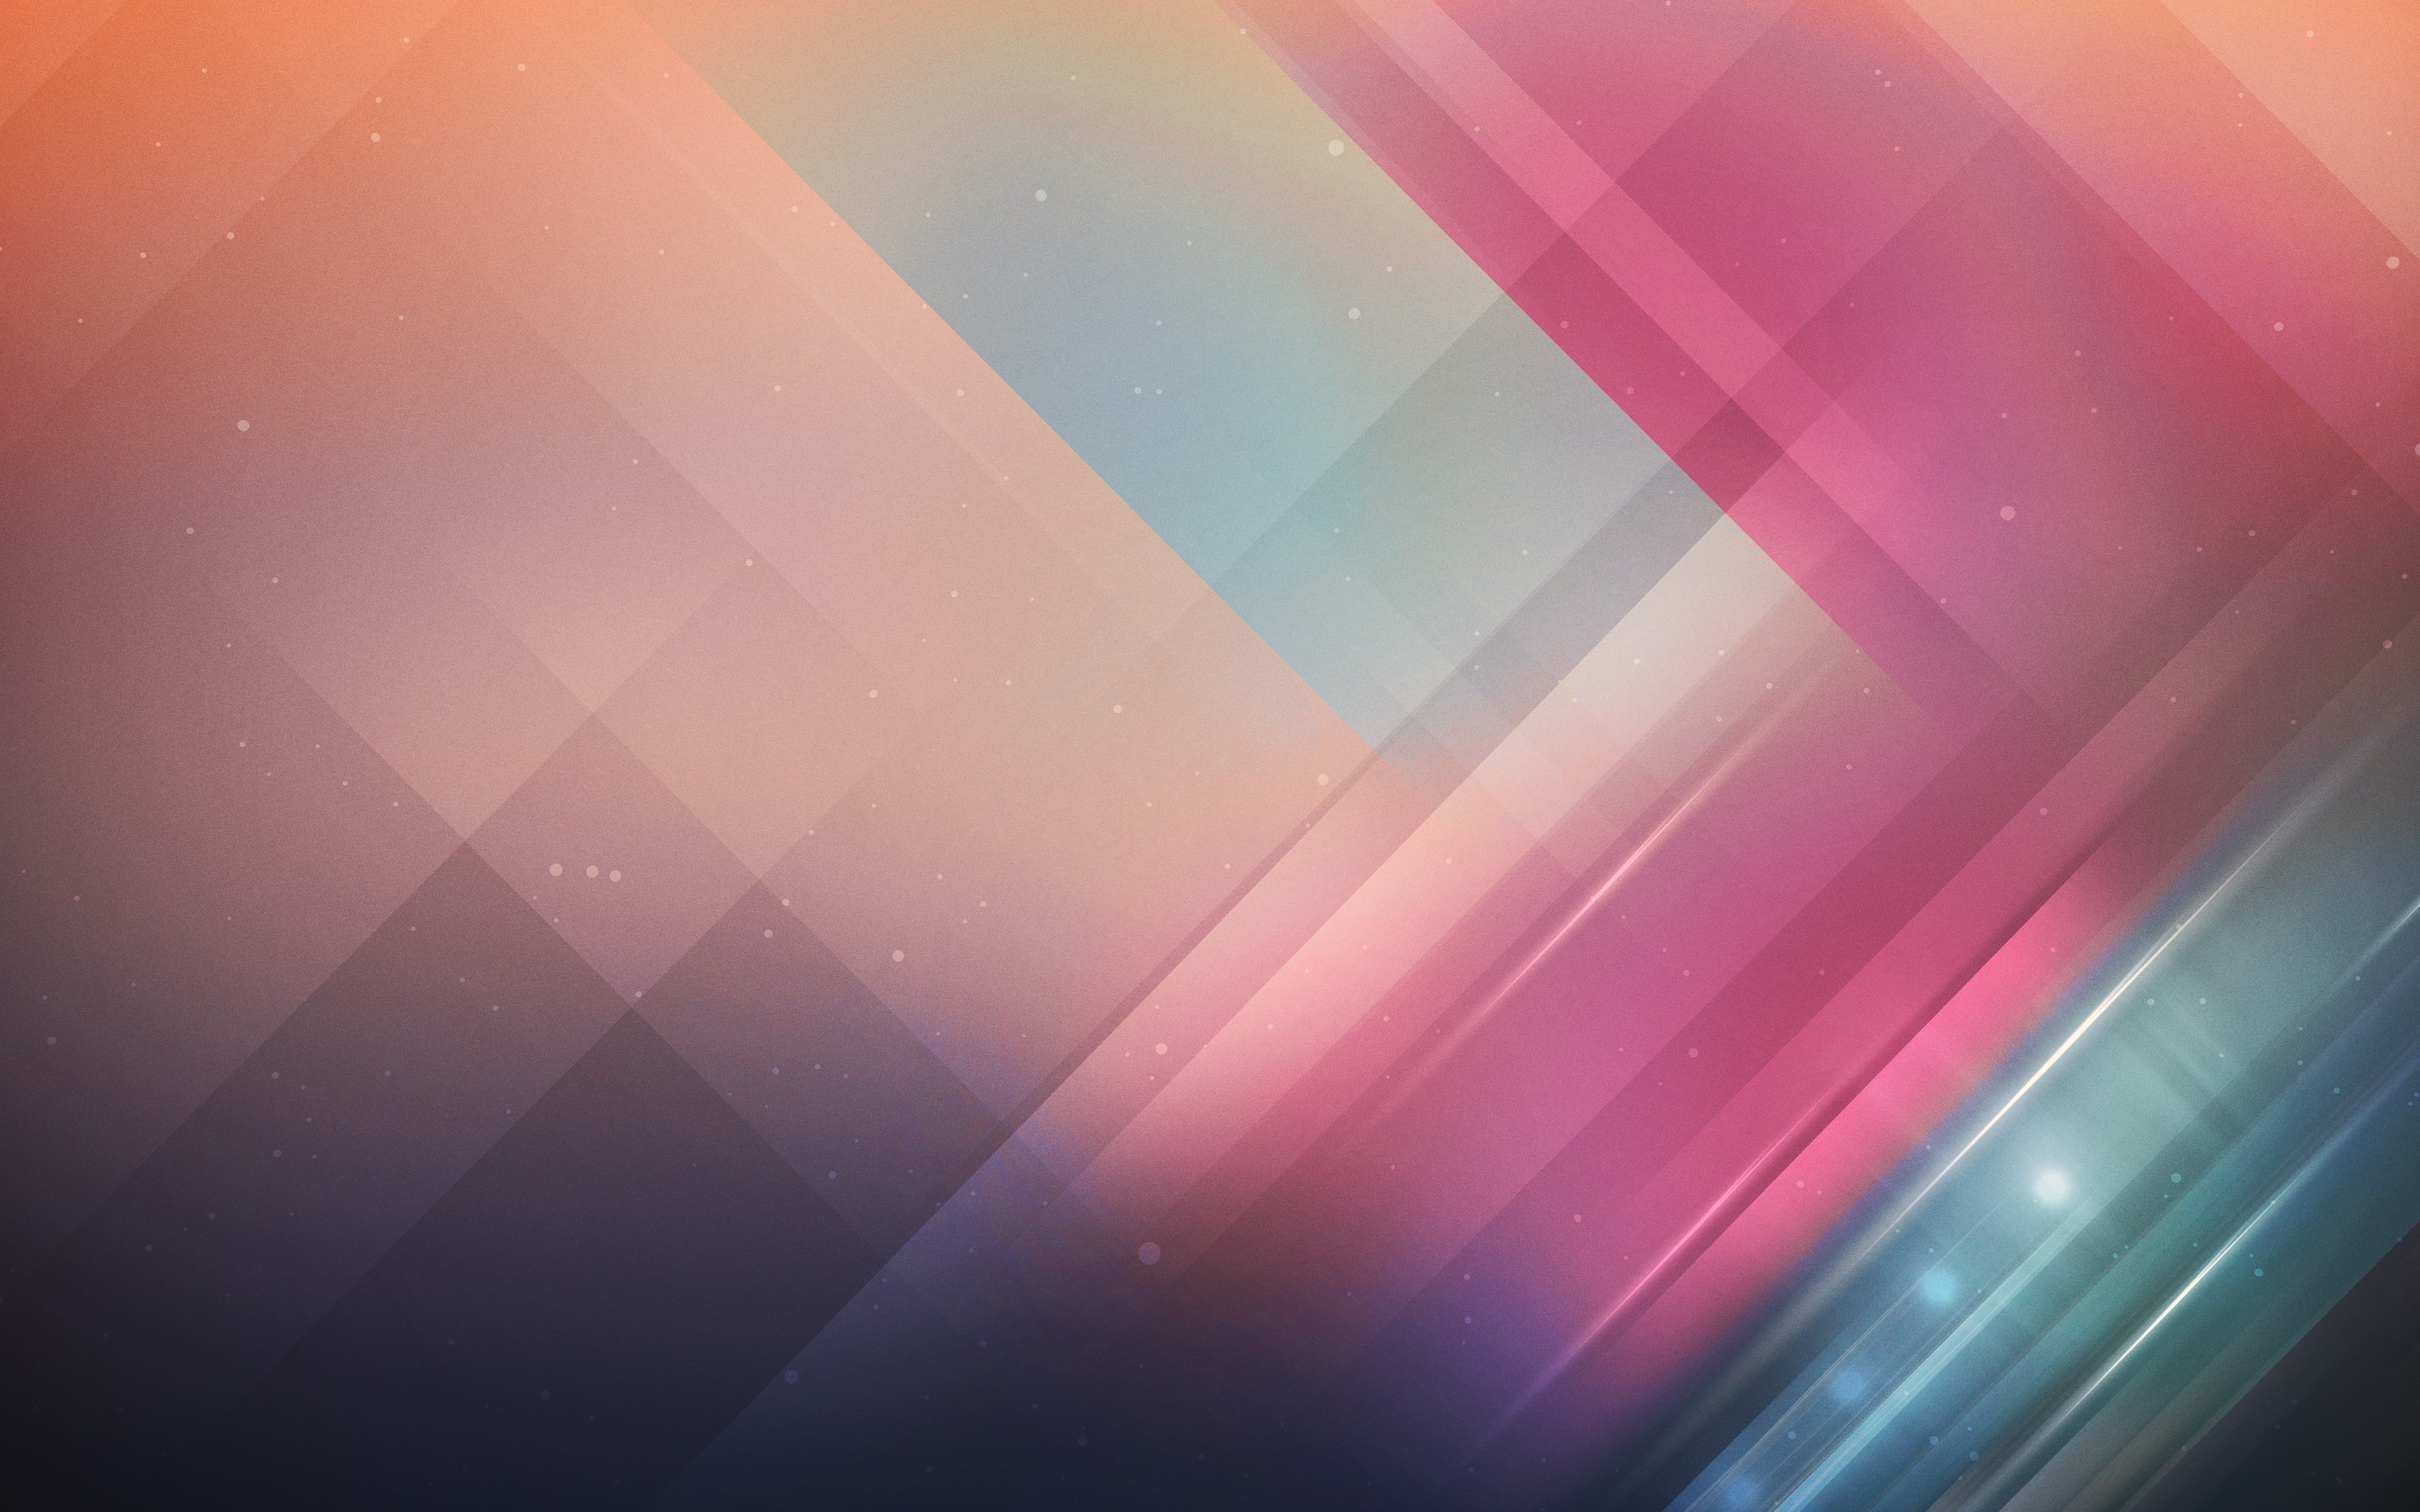 3d Wallpaper 800x1280 Texture Abstract Hd Abstract 4k Wallpapers Images